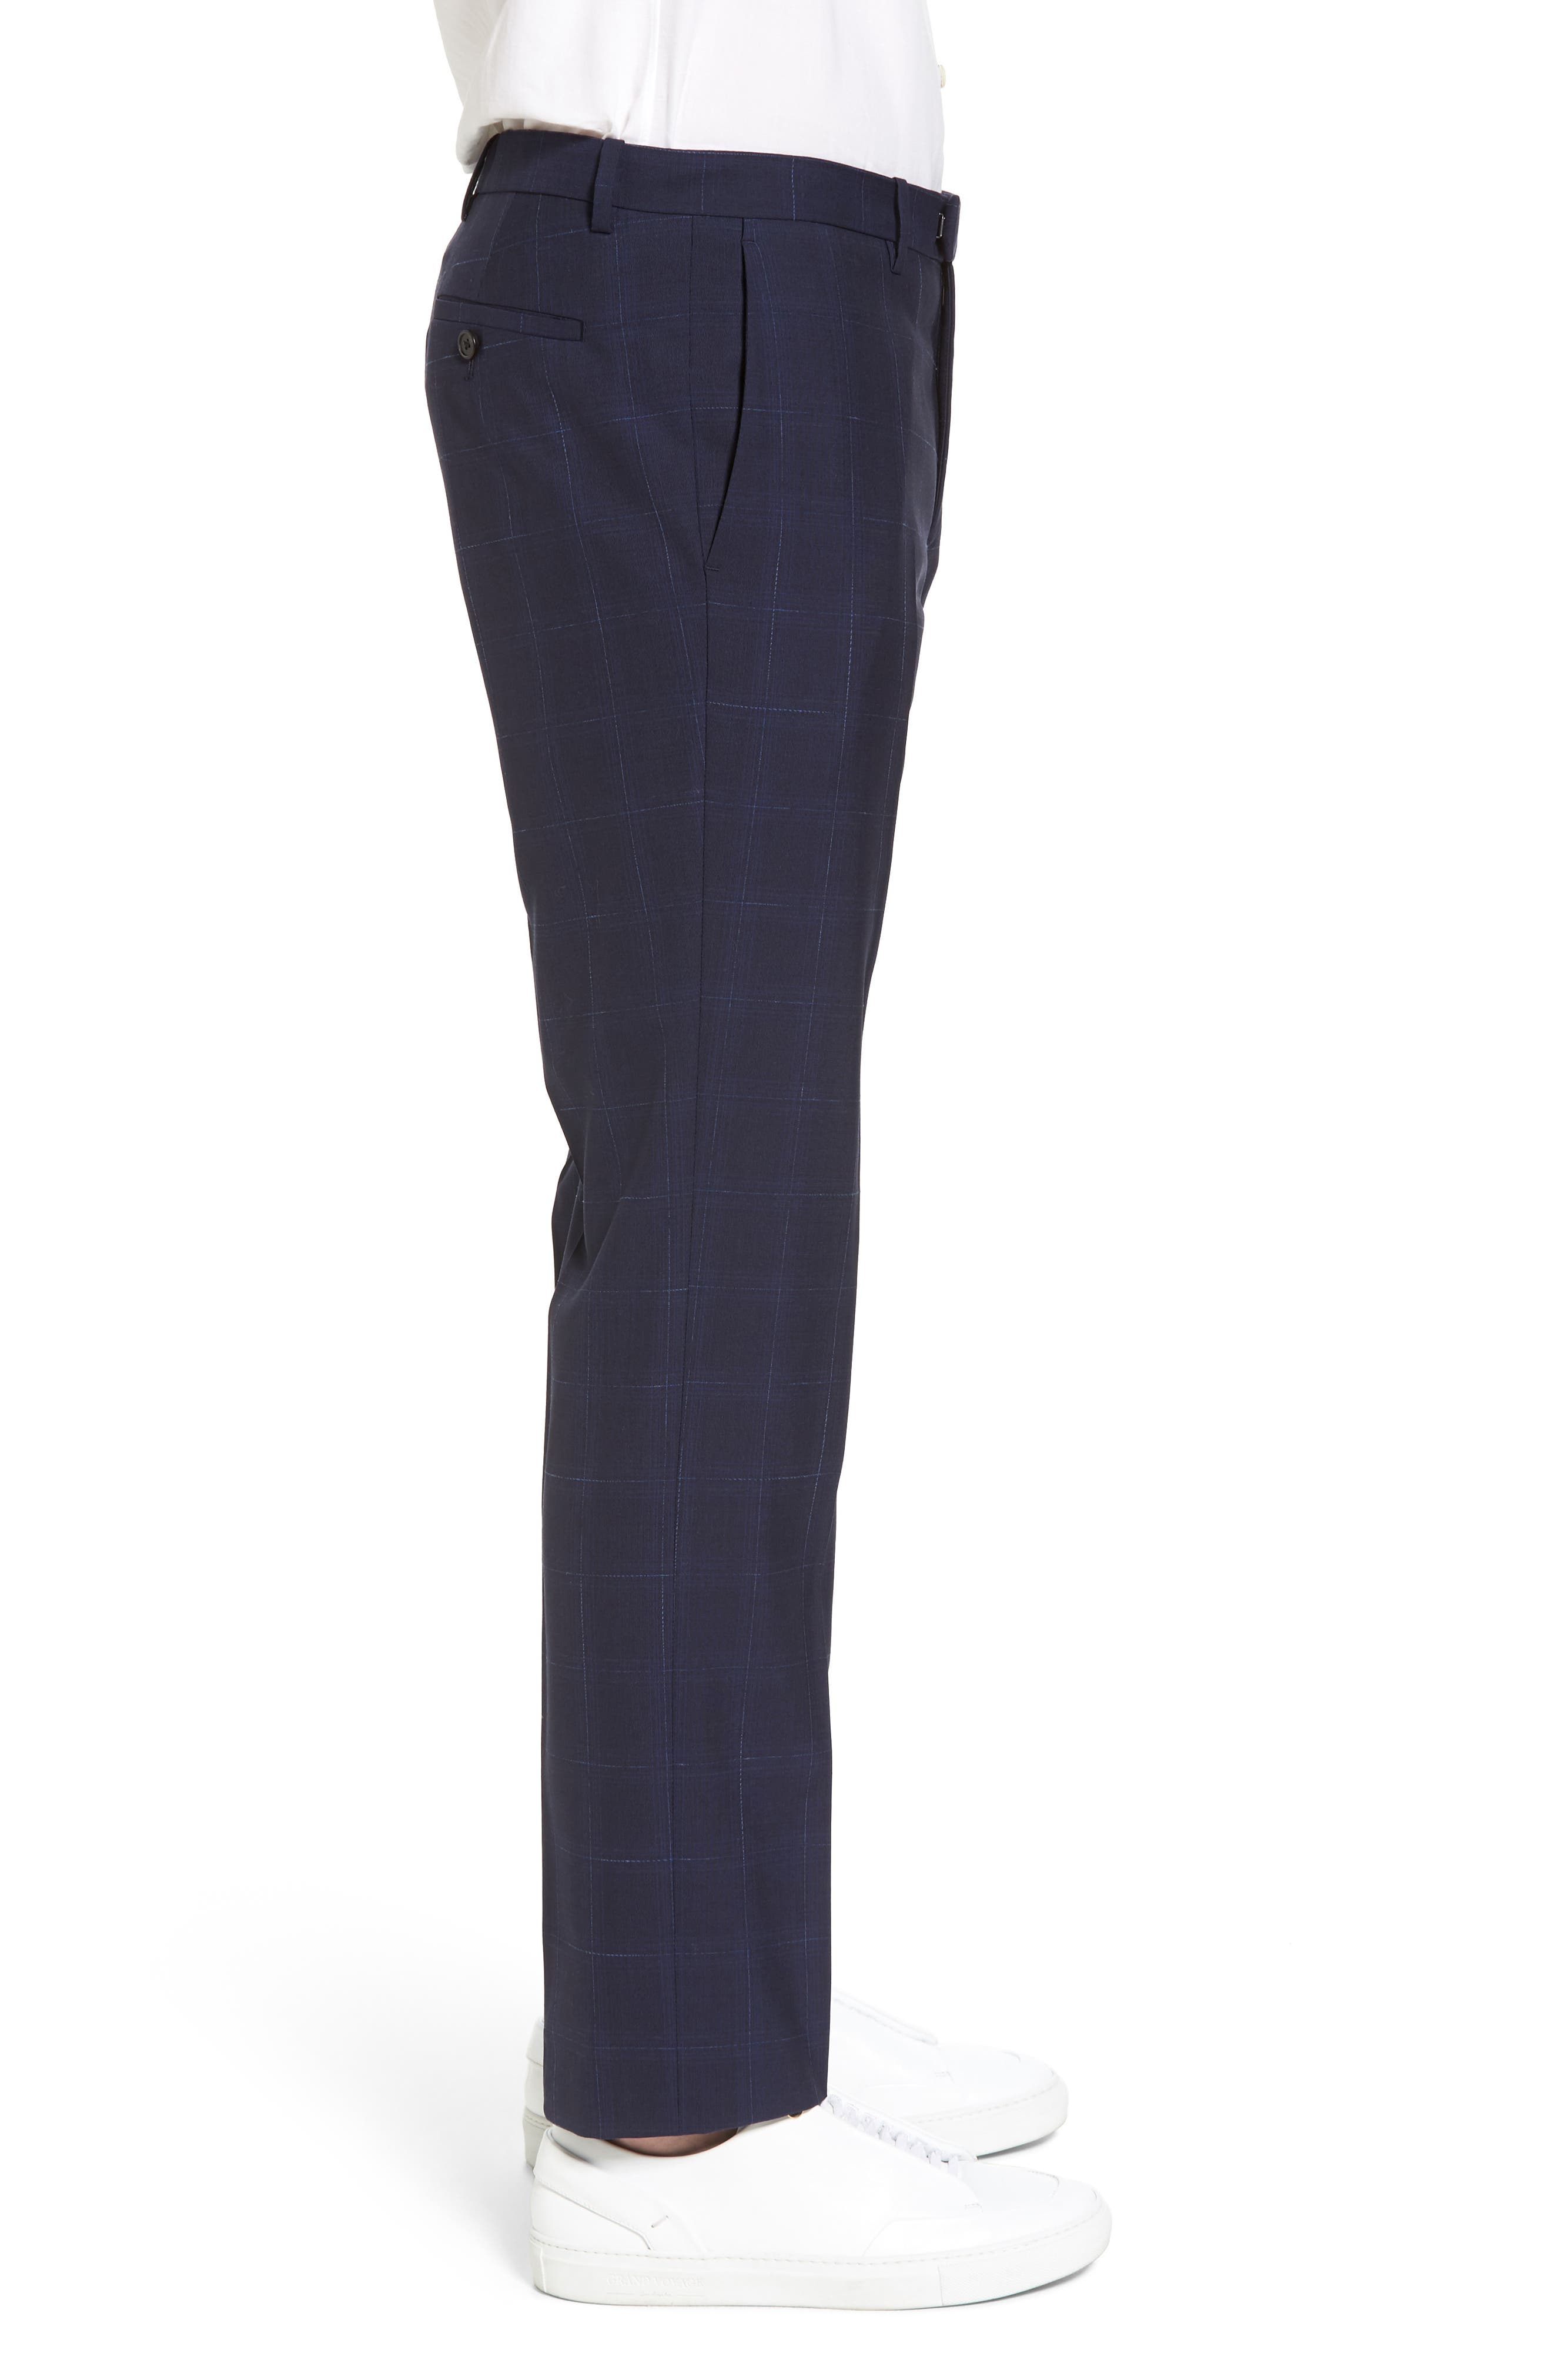 Marlo Flat Front Plaid Wool Trousers,                             Alternate thumbnail 3, color,                             Eclipse